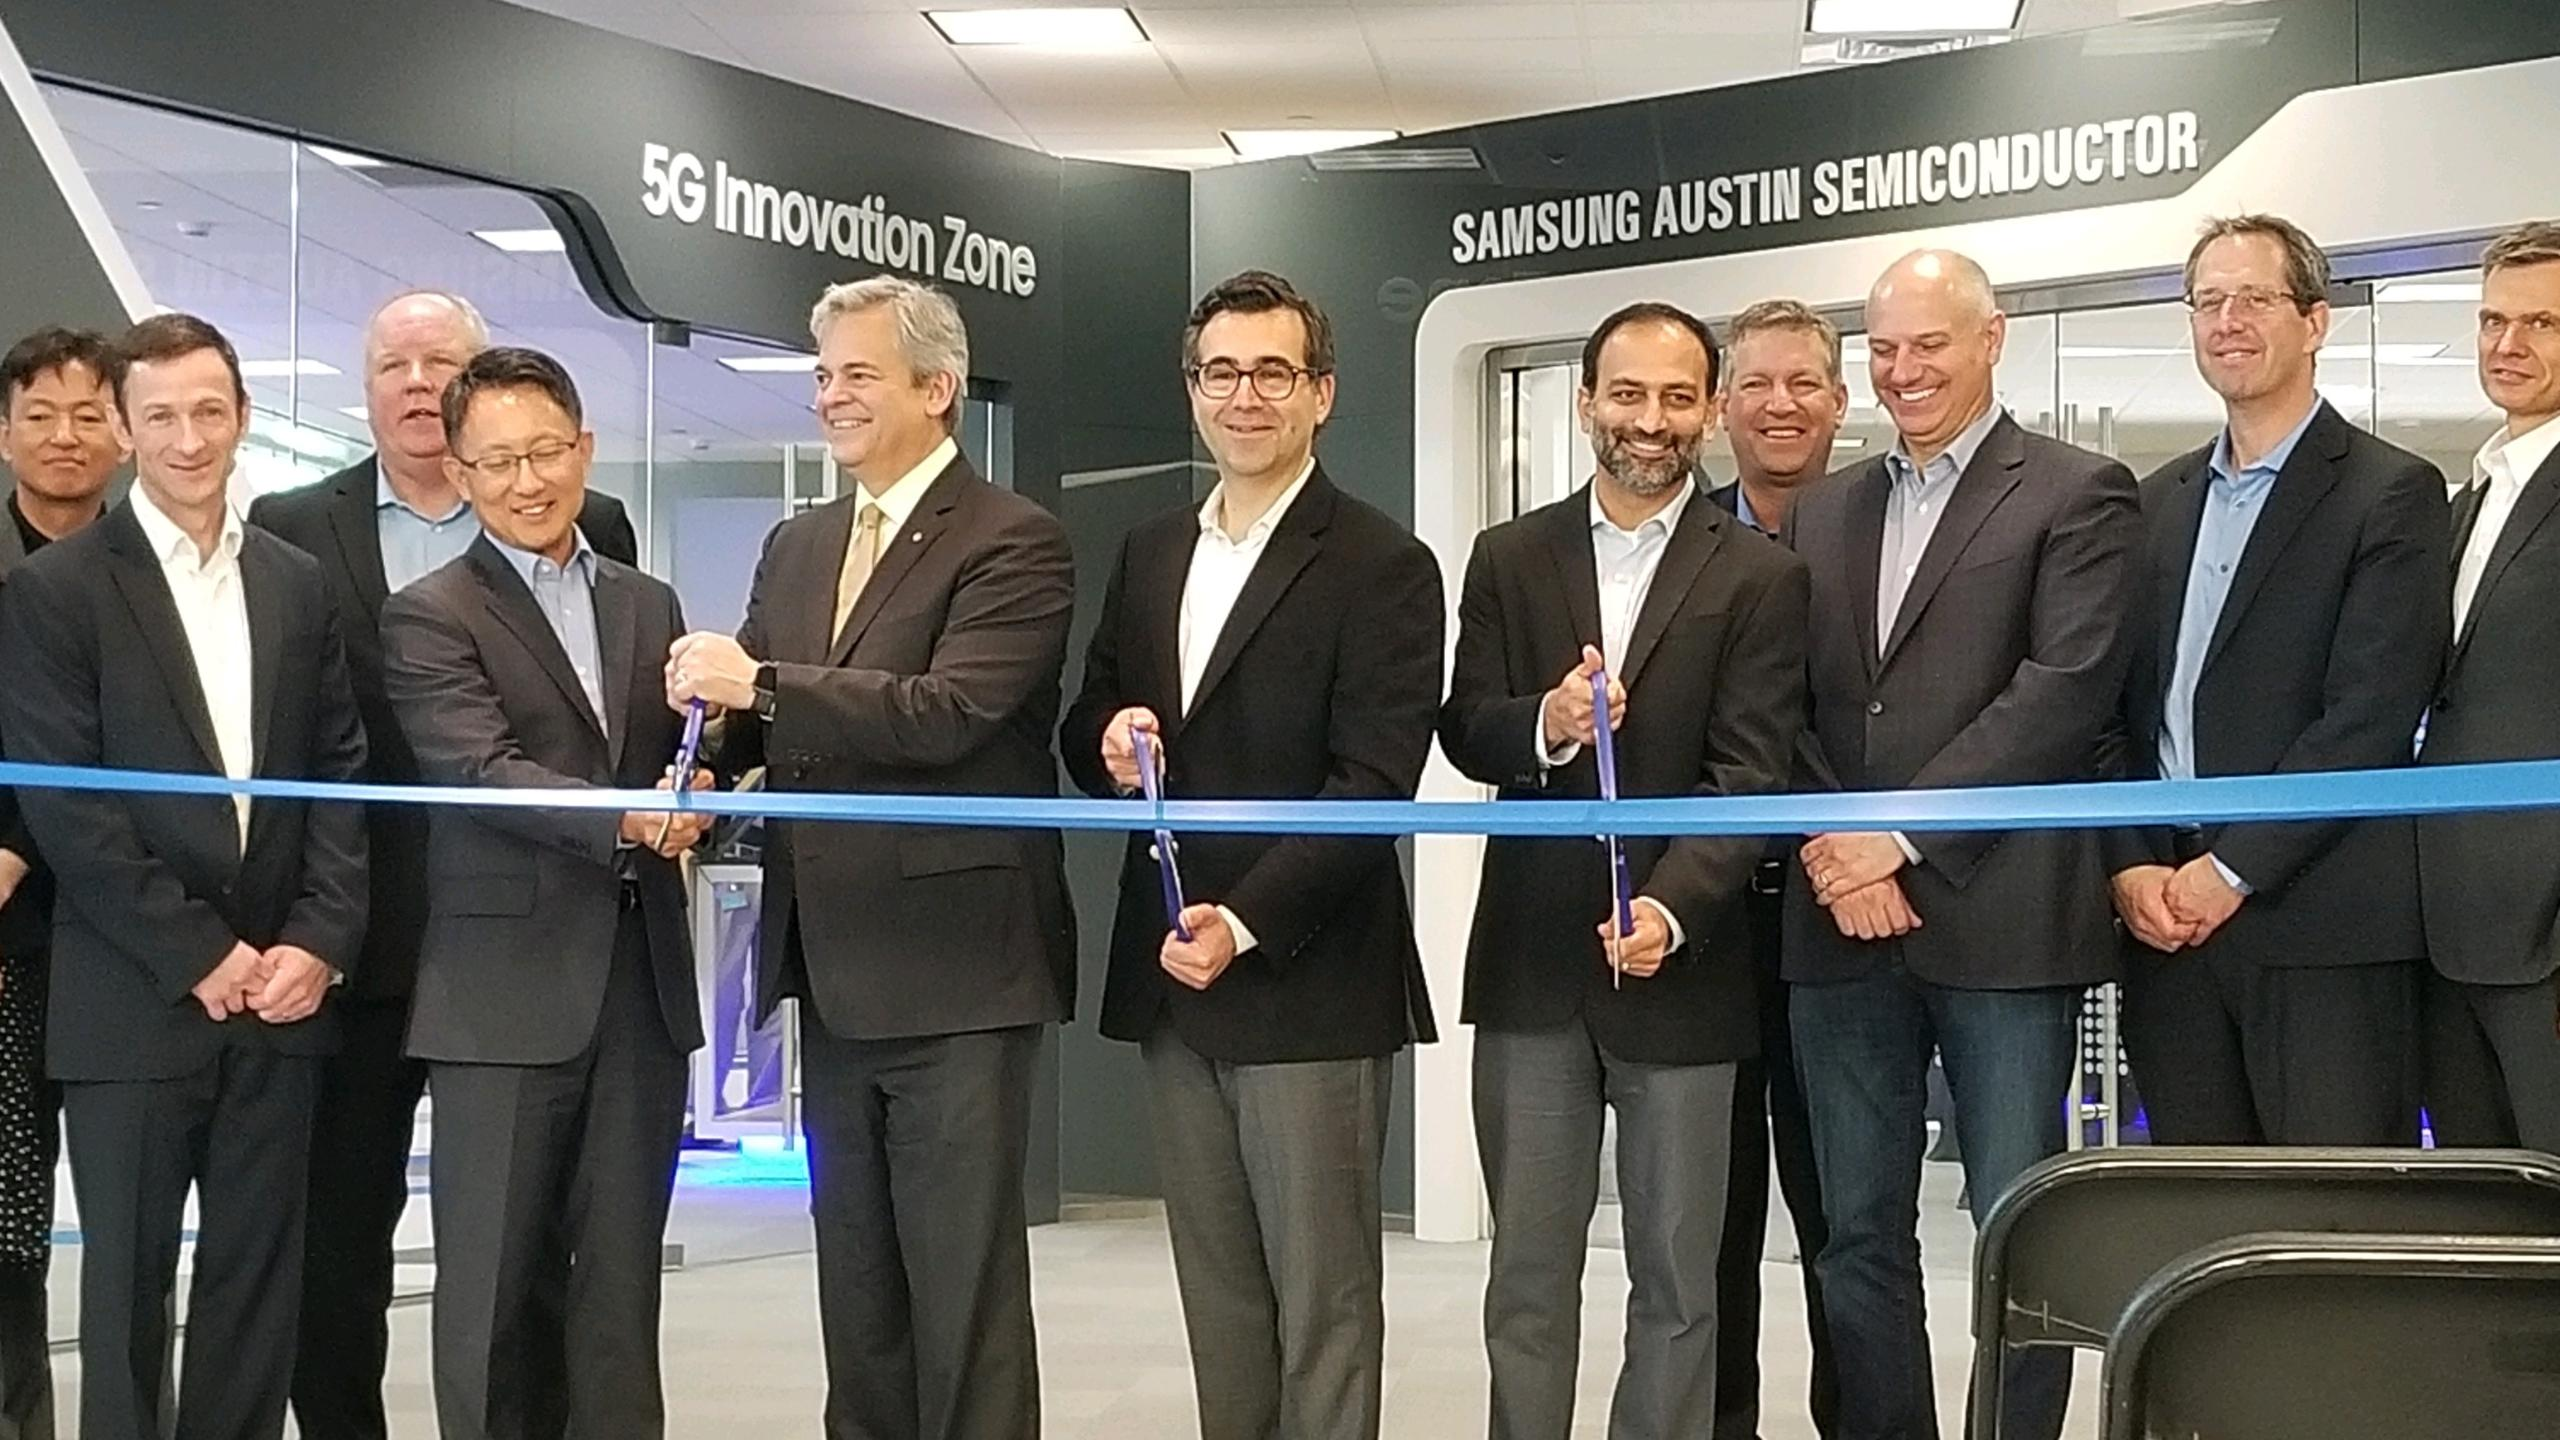 5G Innovation Zone Samsung Austin Semiconductor